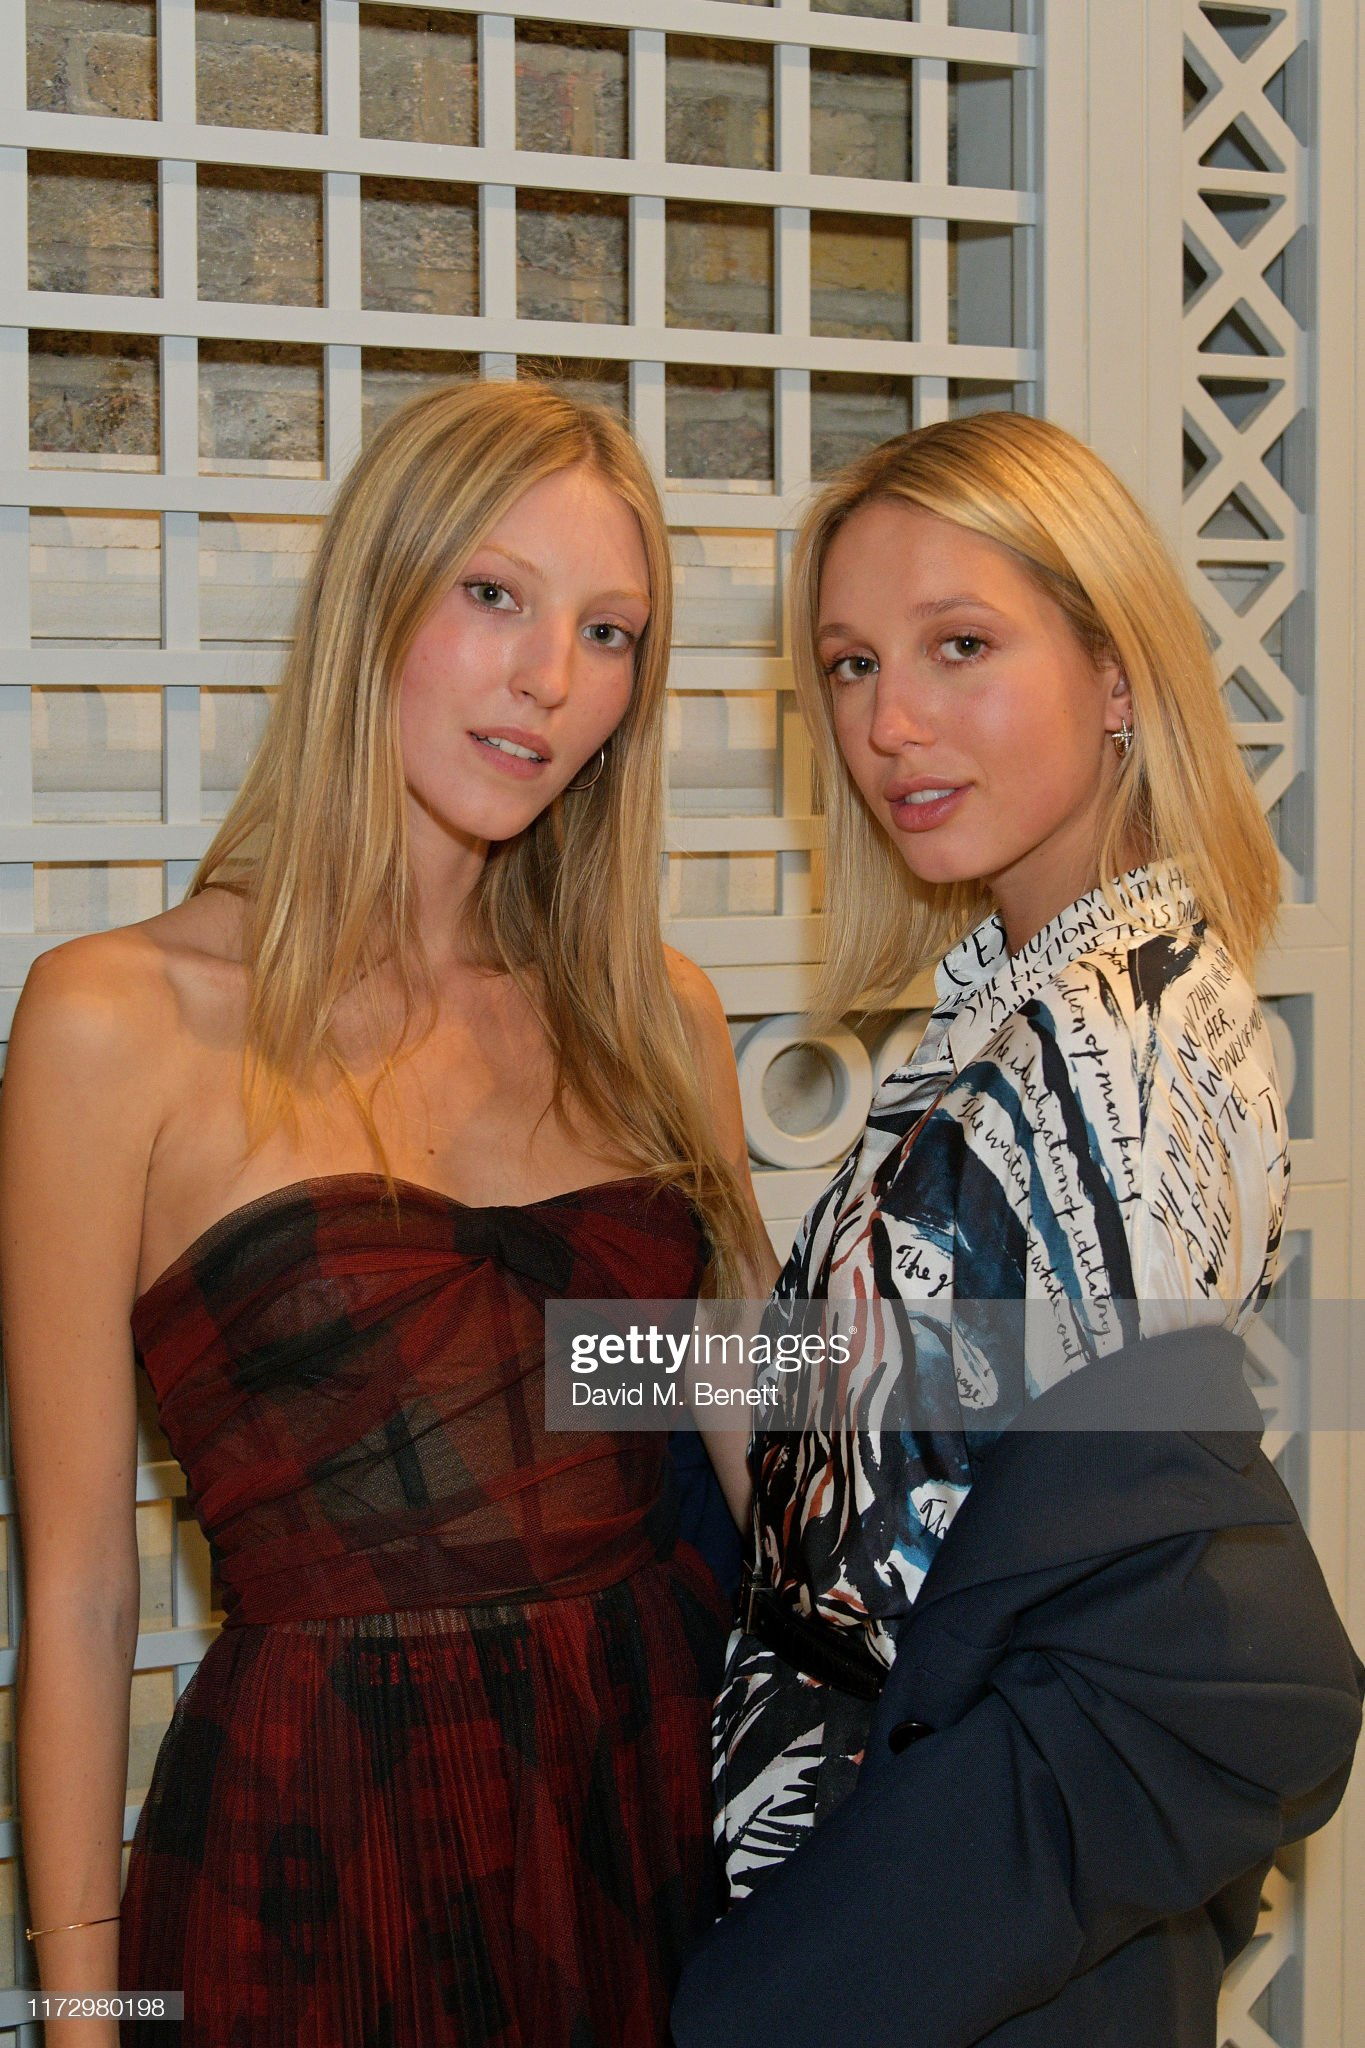 https://media.gettyimages.com/photos/ella-richards-and-princess-mariaolympia-of-greece-and-denmark-attend-picture-id1172980198?s=2048x2048